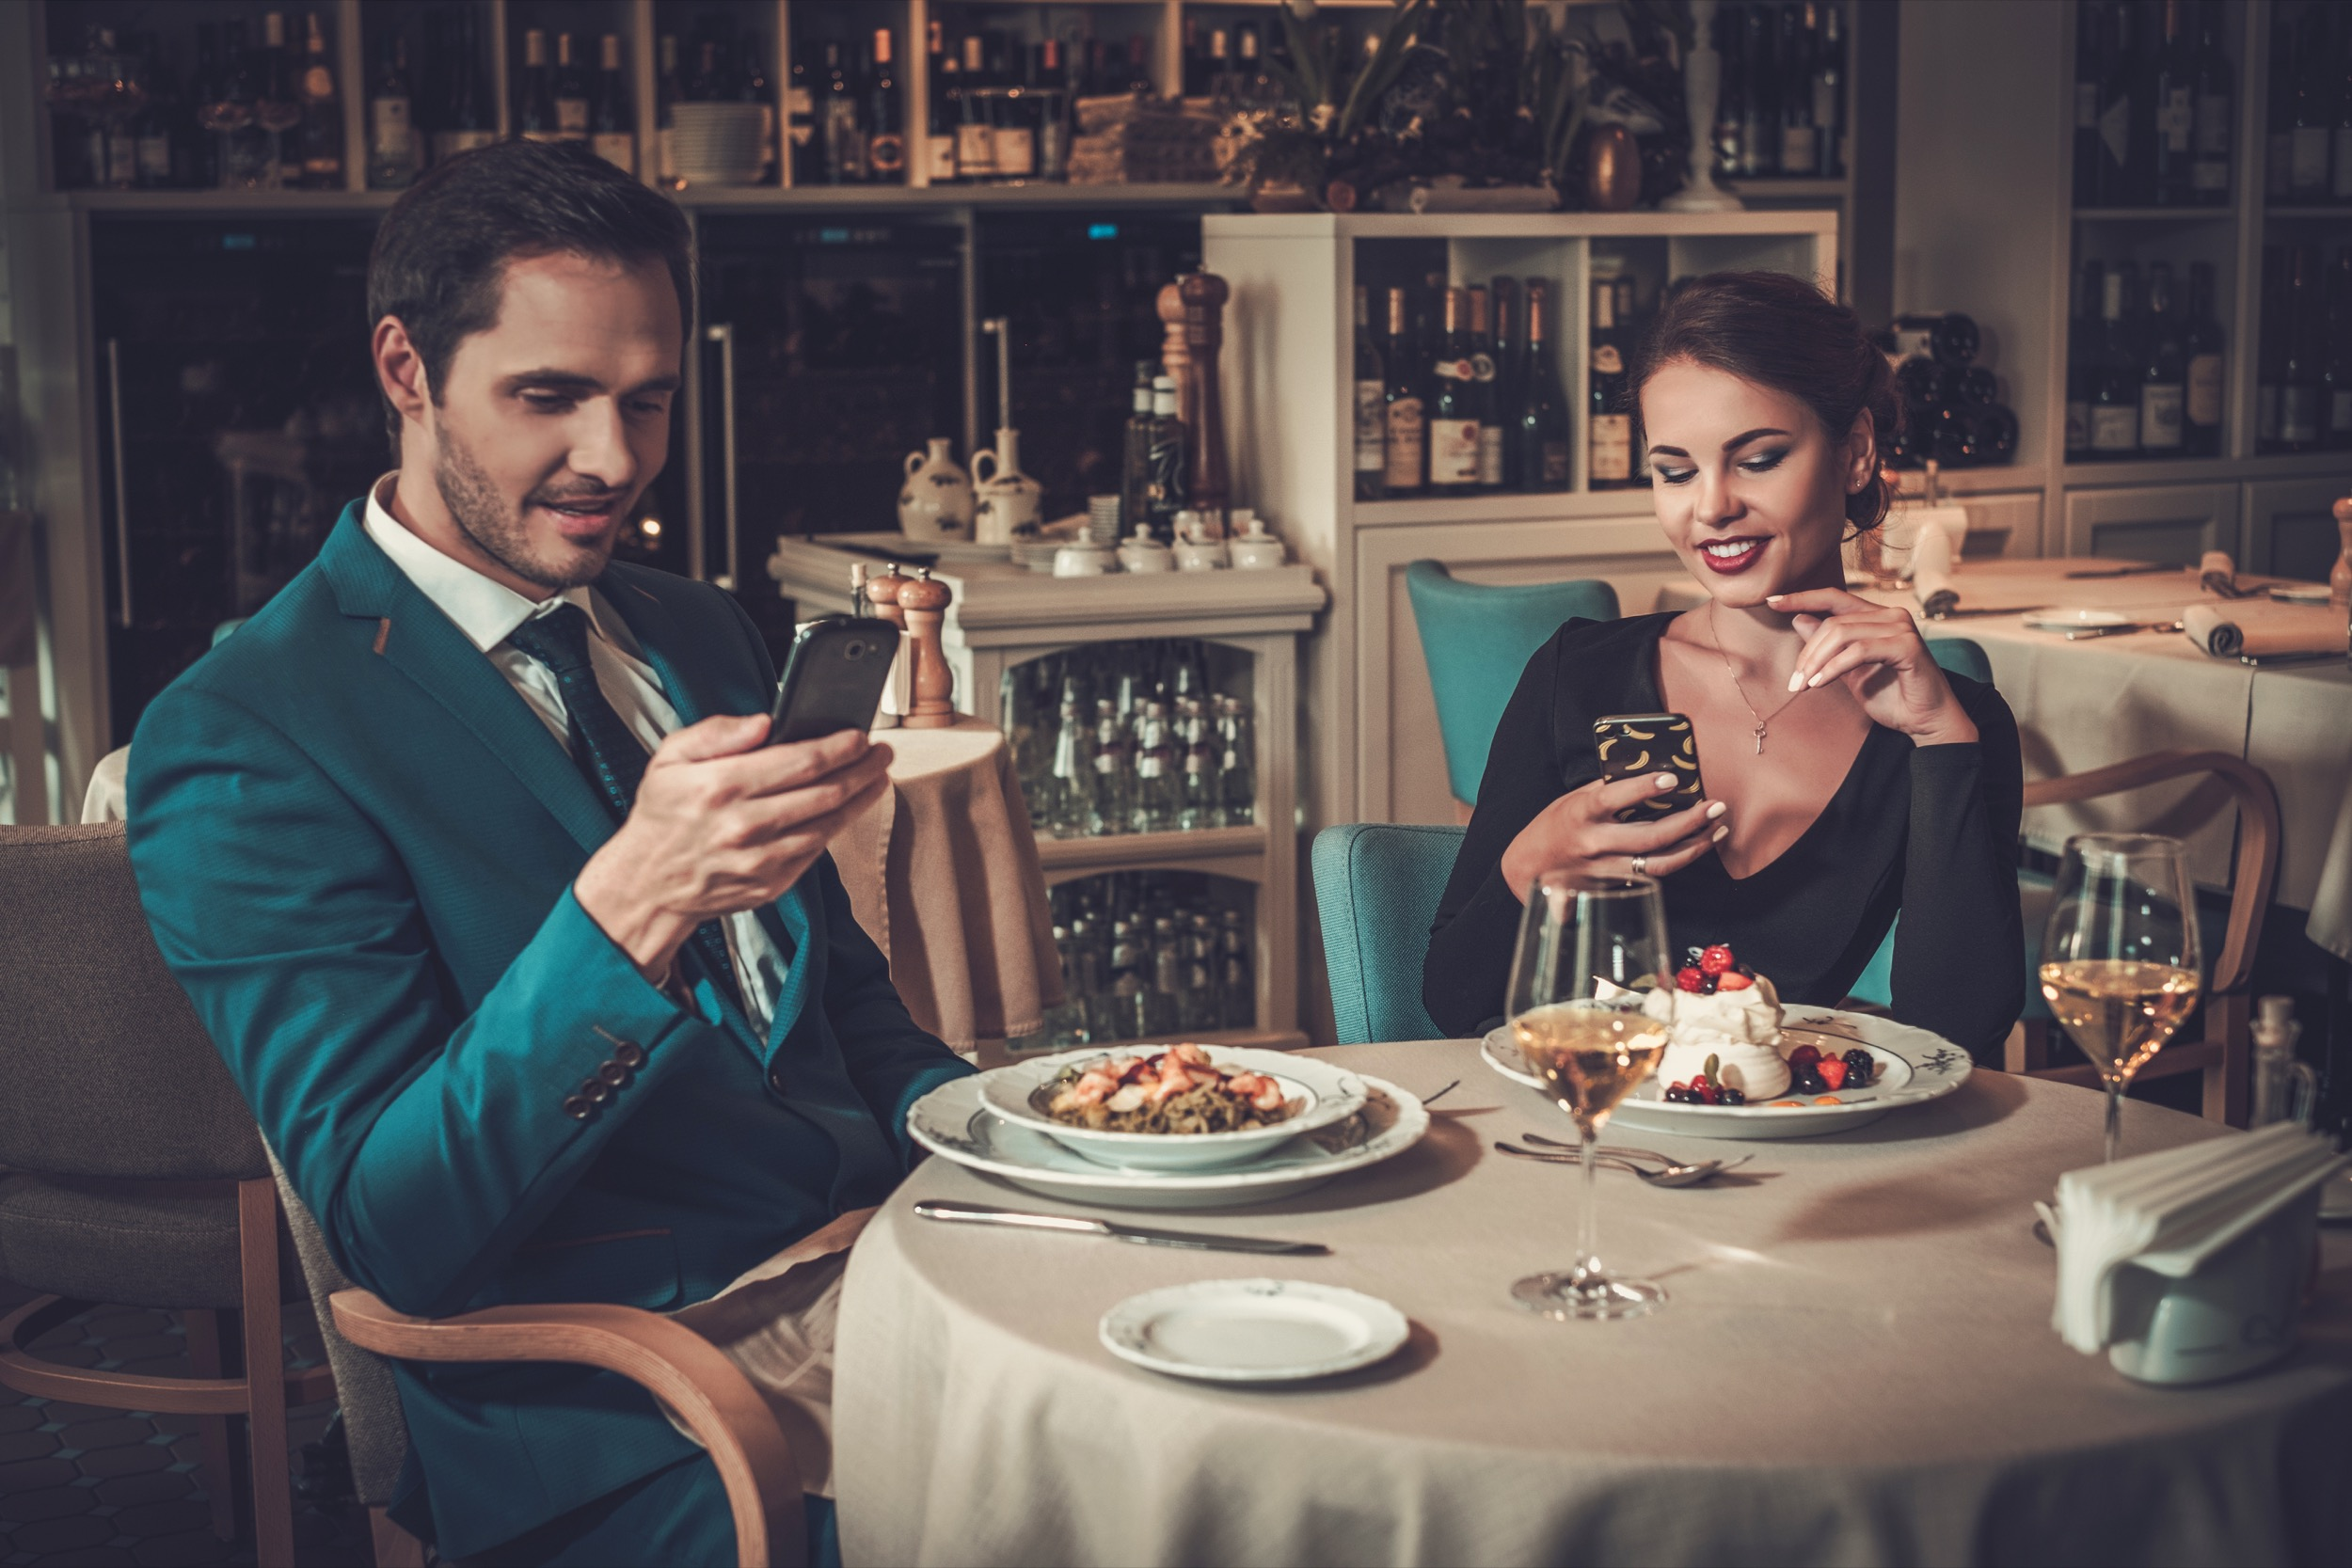 stylish-couple-with-mobile-phones-in-a-restaurant-P3332TD.jpg